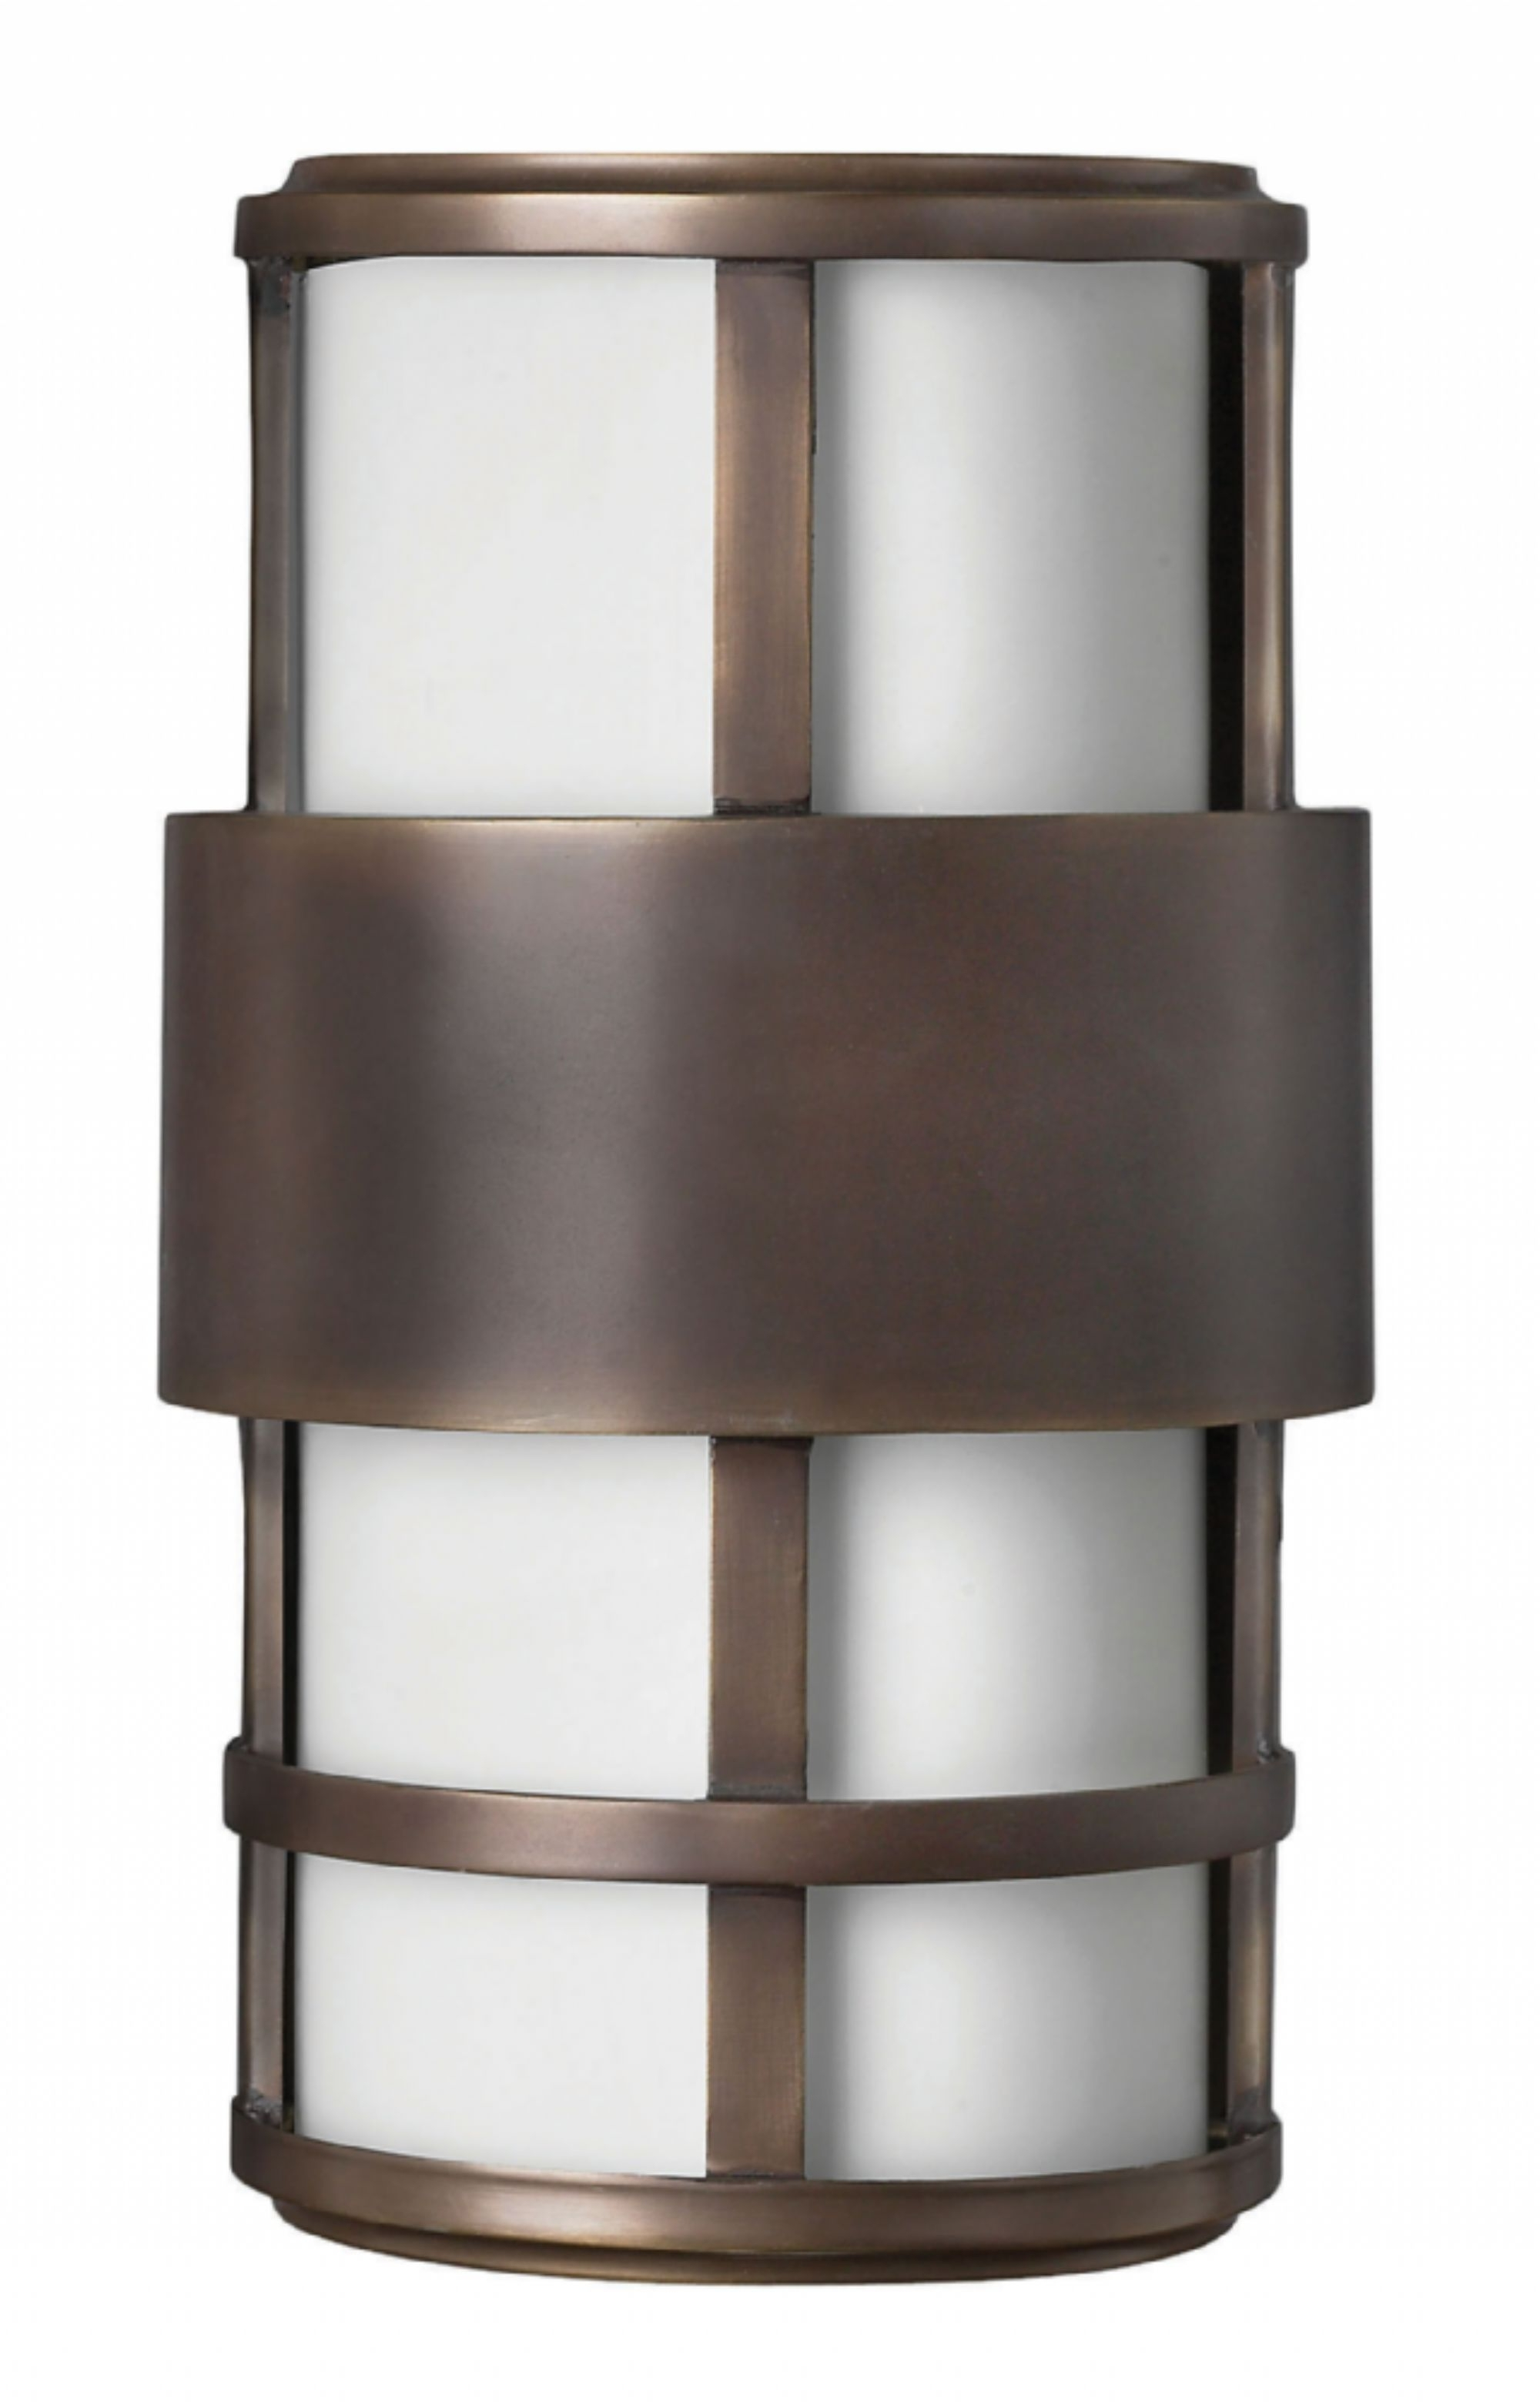 Recent Metro Bronze Saturn > Exterior Wall Mount Inside Large Wall Mount Hinkley Lighting (View 6 of 20)